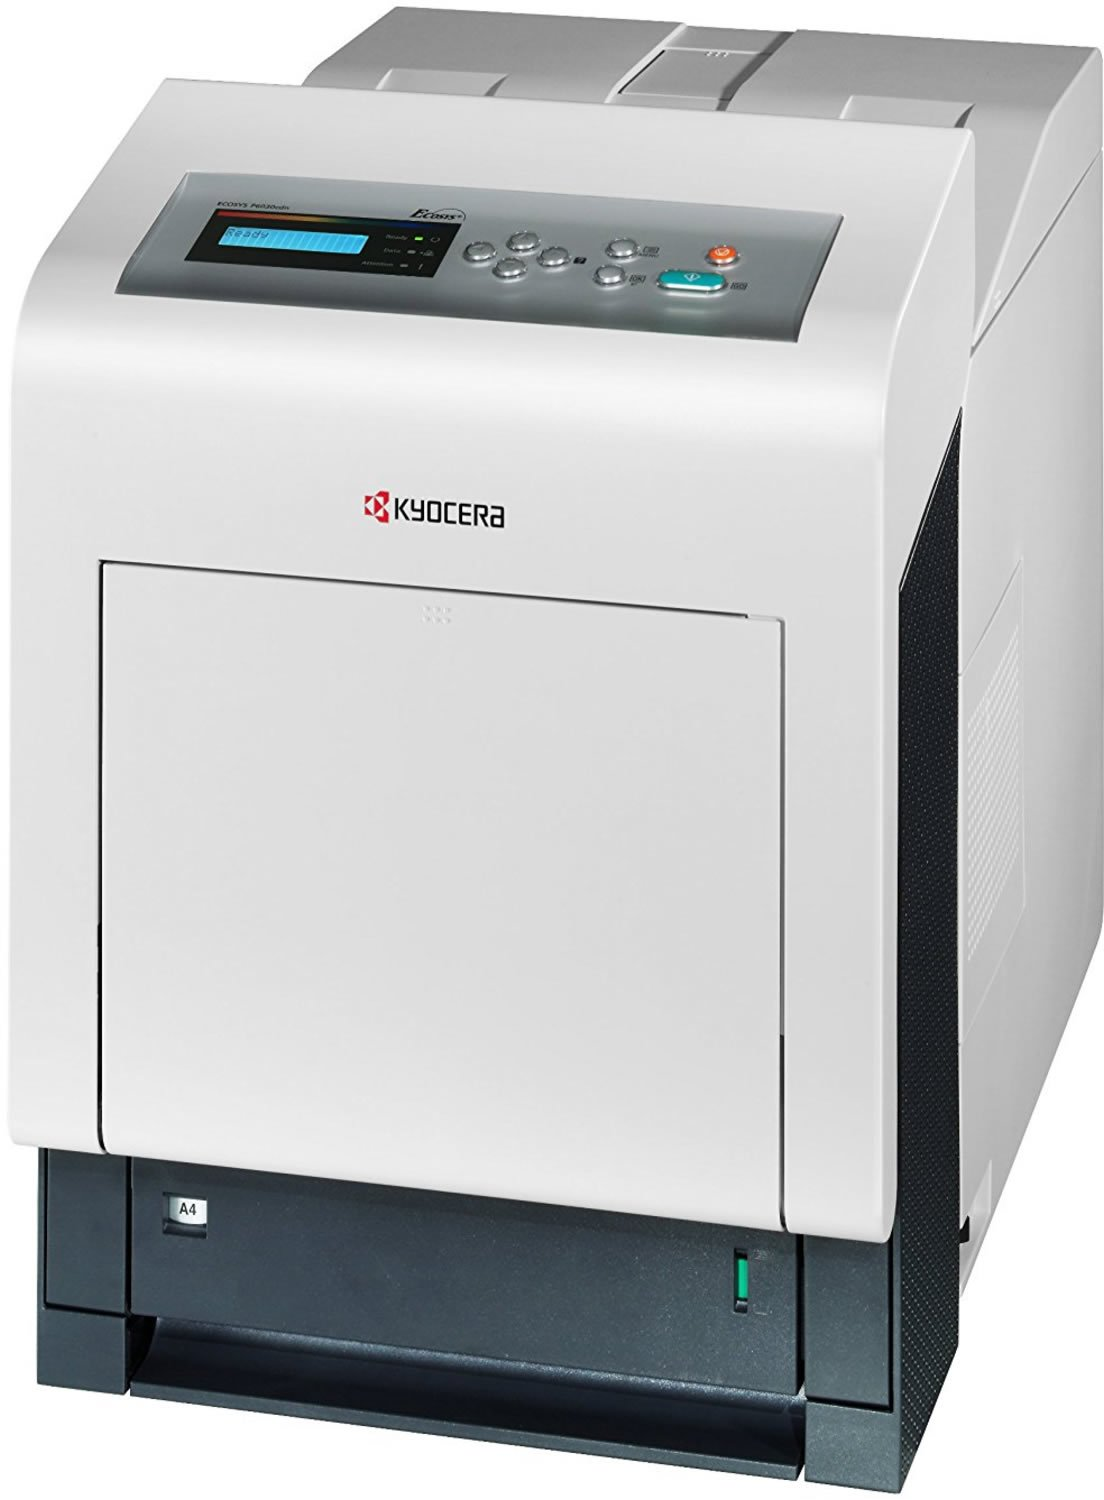 Kyocera 1102PP2US0 Model ECOSYS P6030cdn Color Network Laser Printer, 32 PPM B&W and Color, Resolution 600 x 600 DPI and 9,600 x 600 Multi Bit Interpolated Resolution, 512 MB Upgradable to 1,536 MB